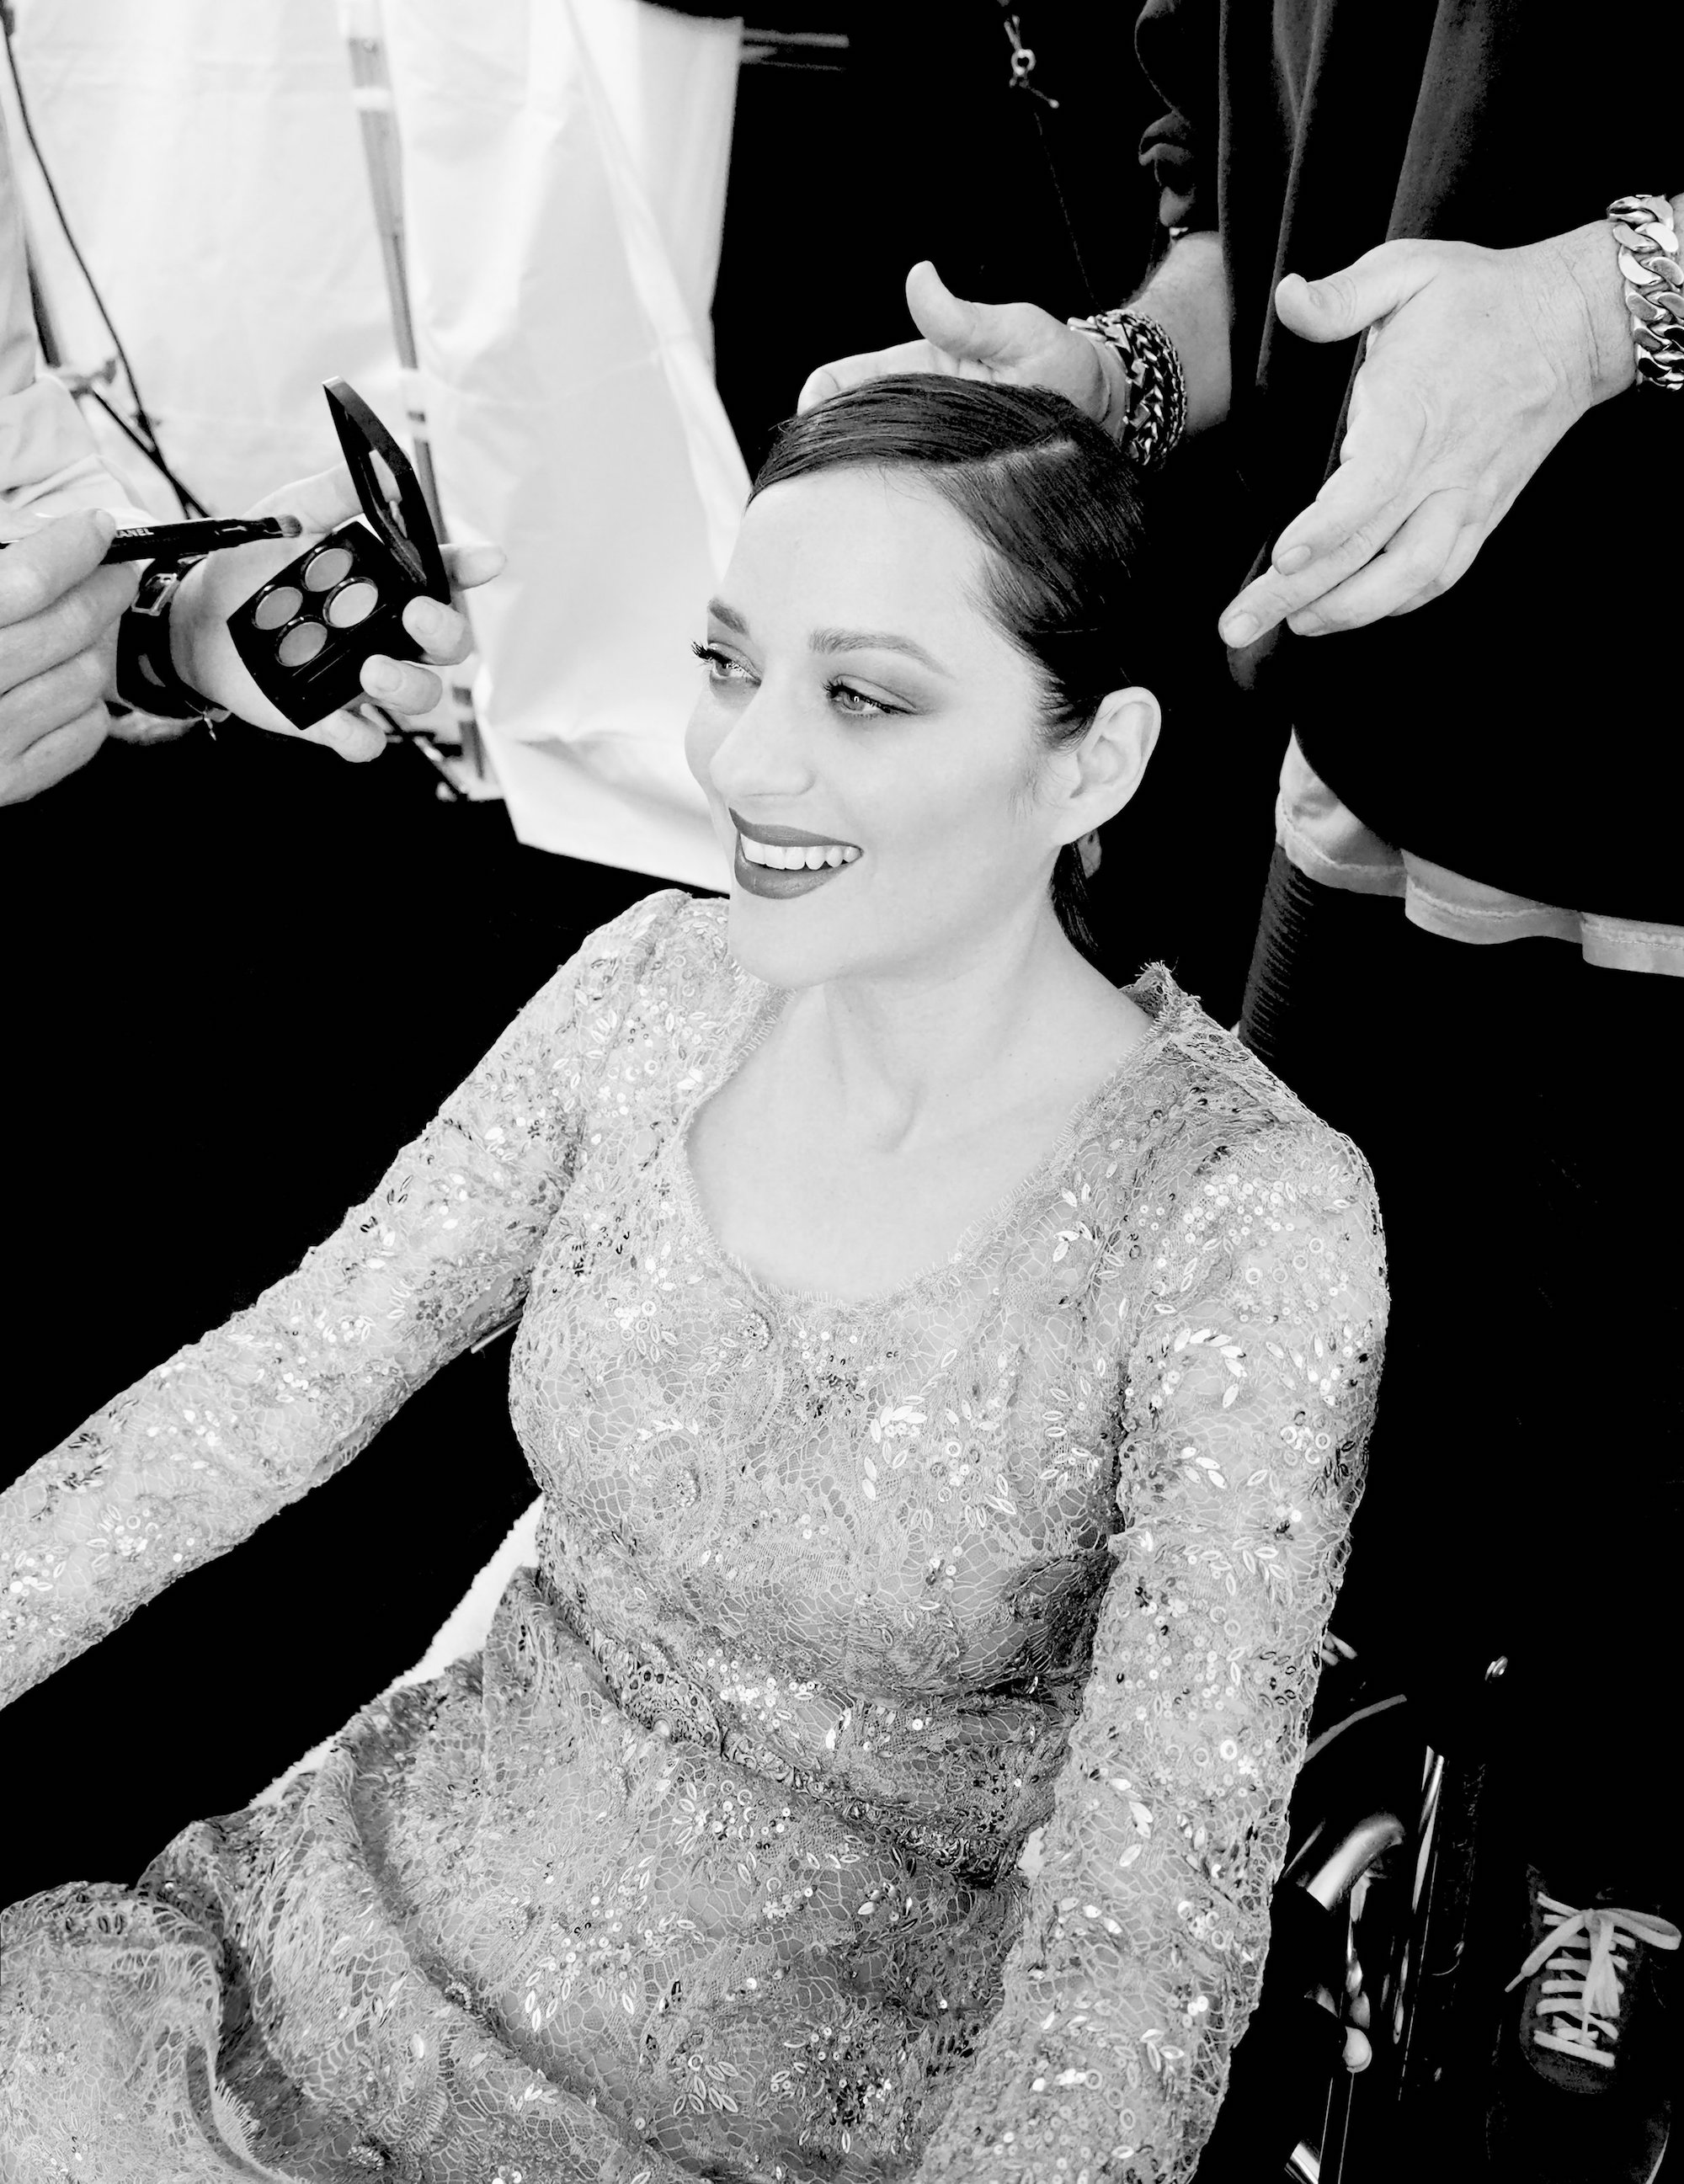 Marion Cotillard for Chanel No 5 black and white beauty